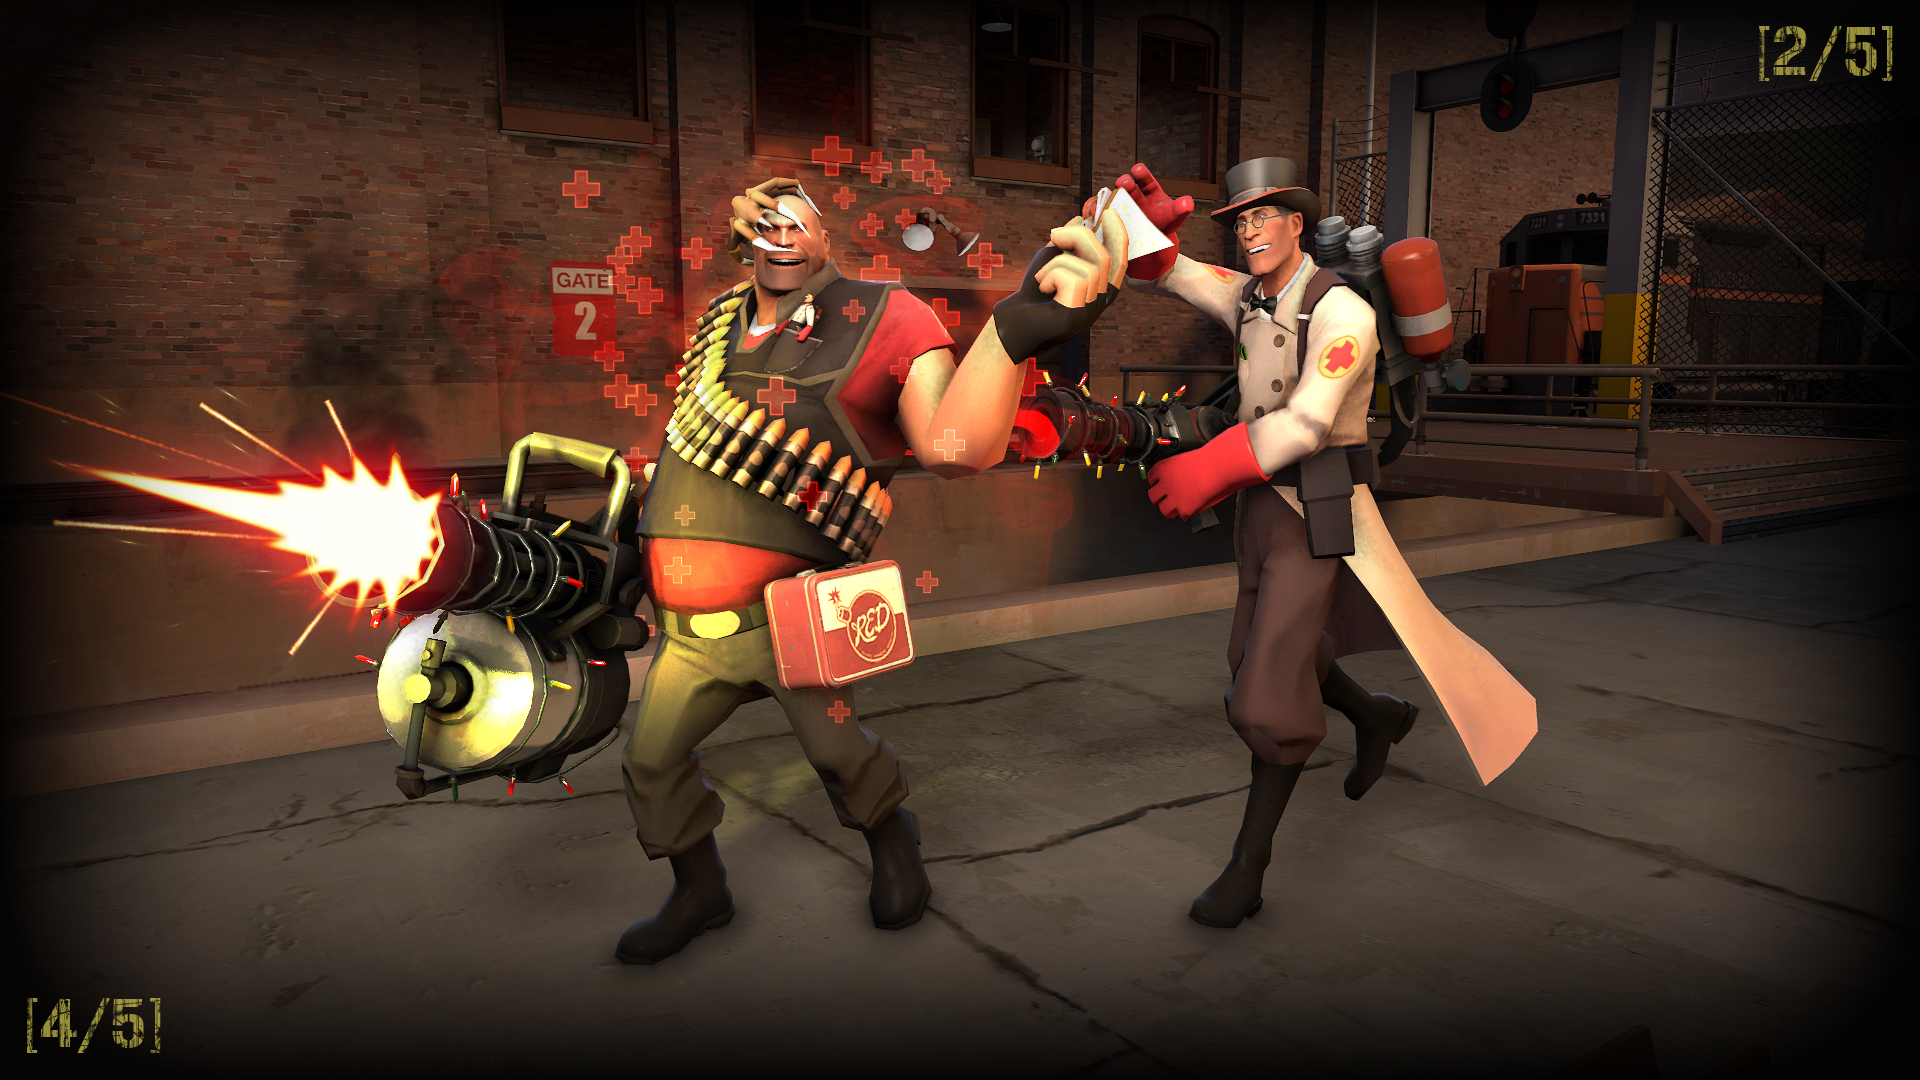 Tf2 wallpaper 1920x1080 79129 - Tf2 logo wallpaper ...